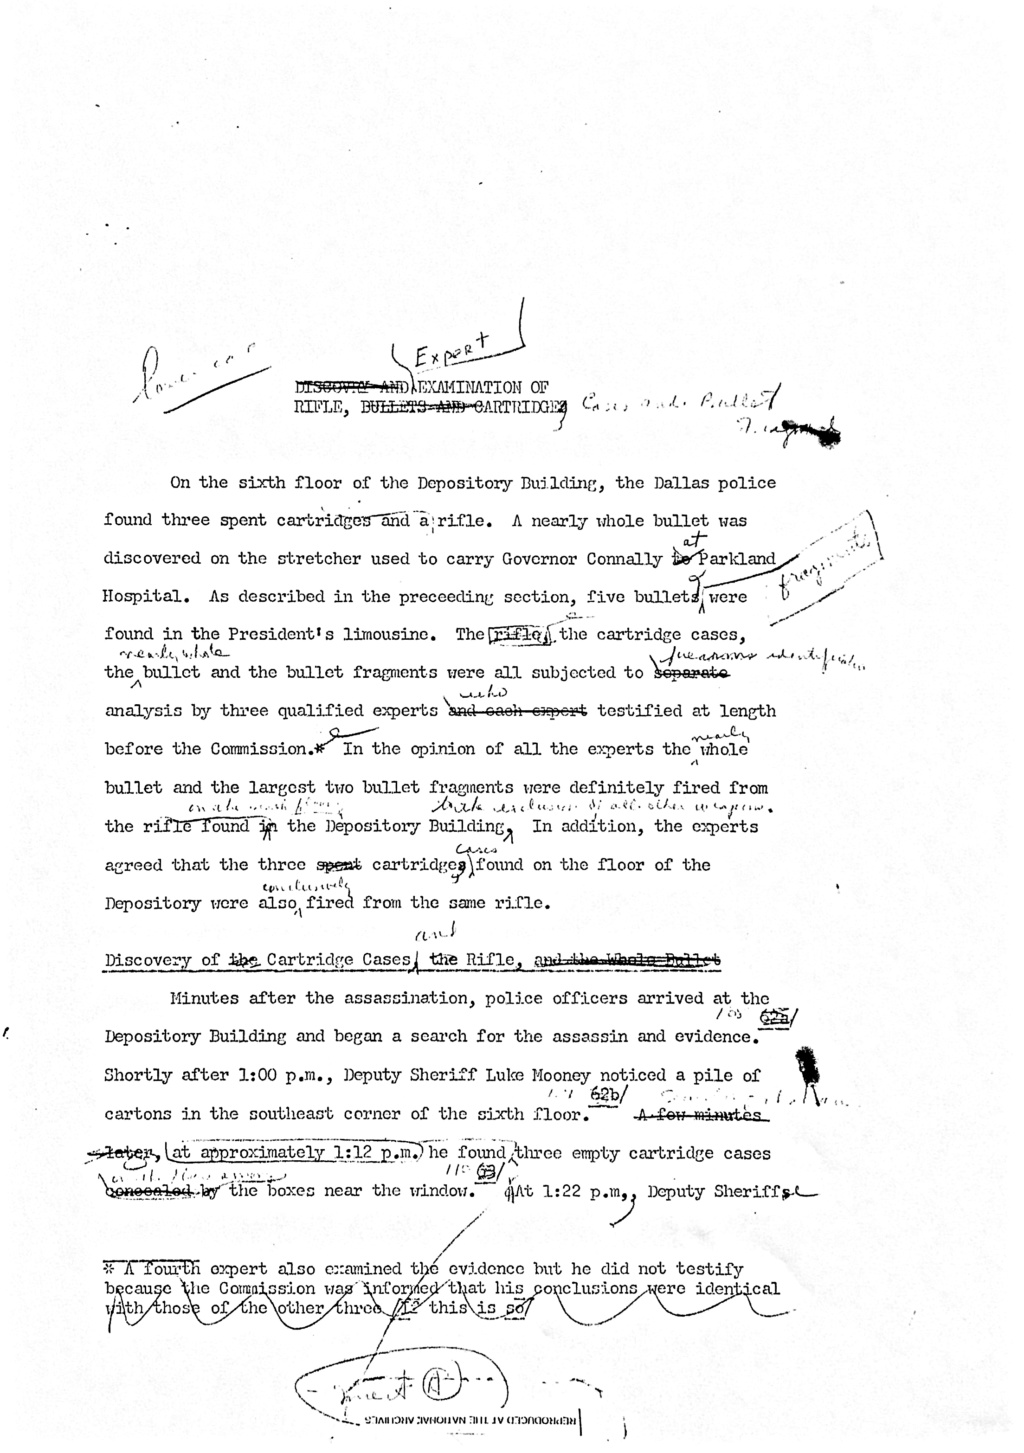 Warren Commission Documents Edits and Proofing C8657811